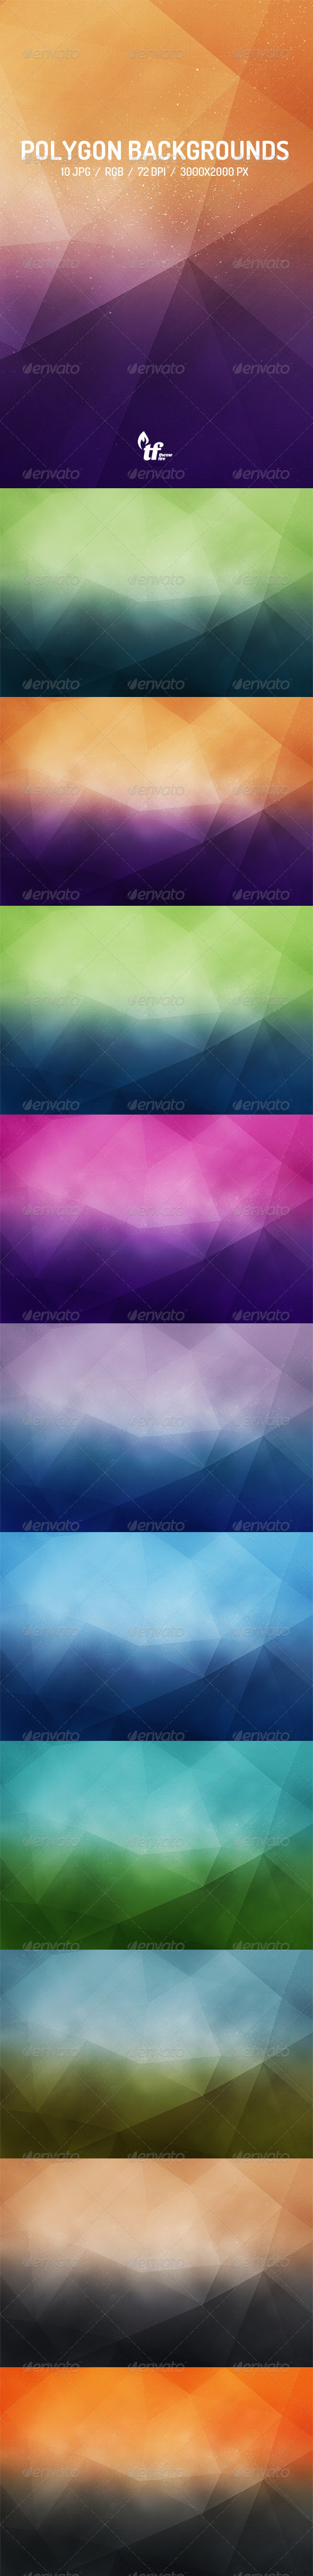 GraphicRiver 10 Polygon Backgrounds 7690224